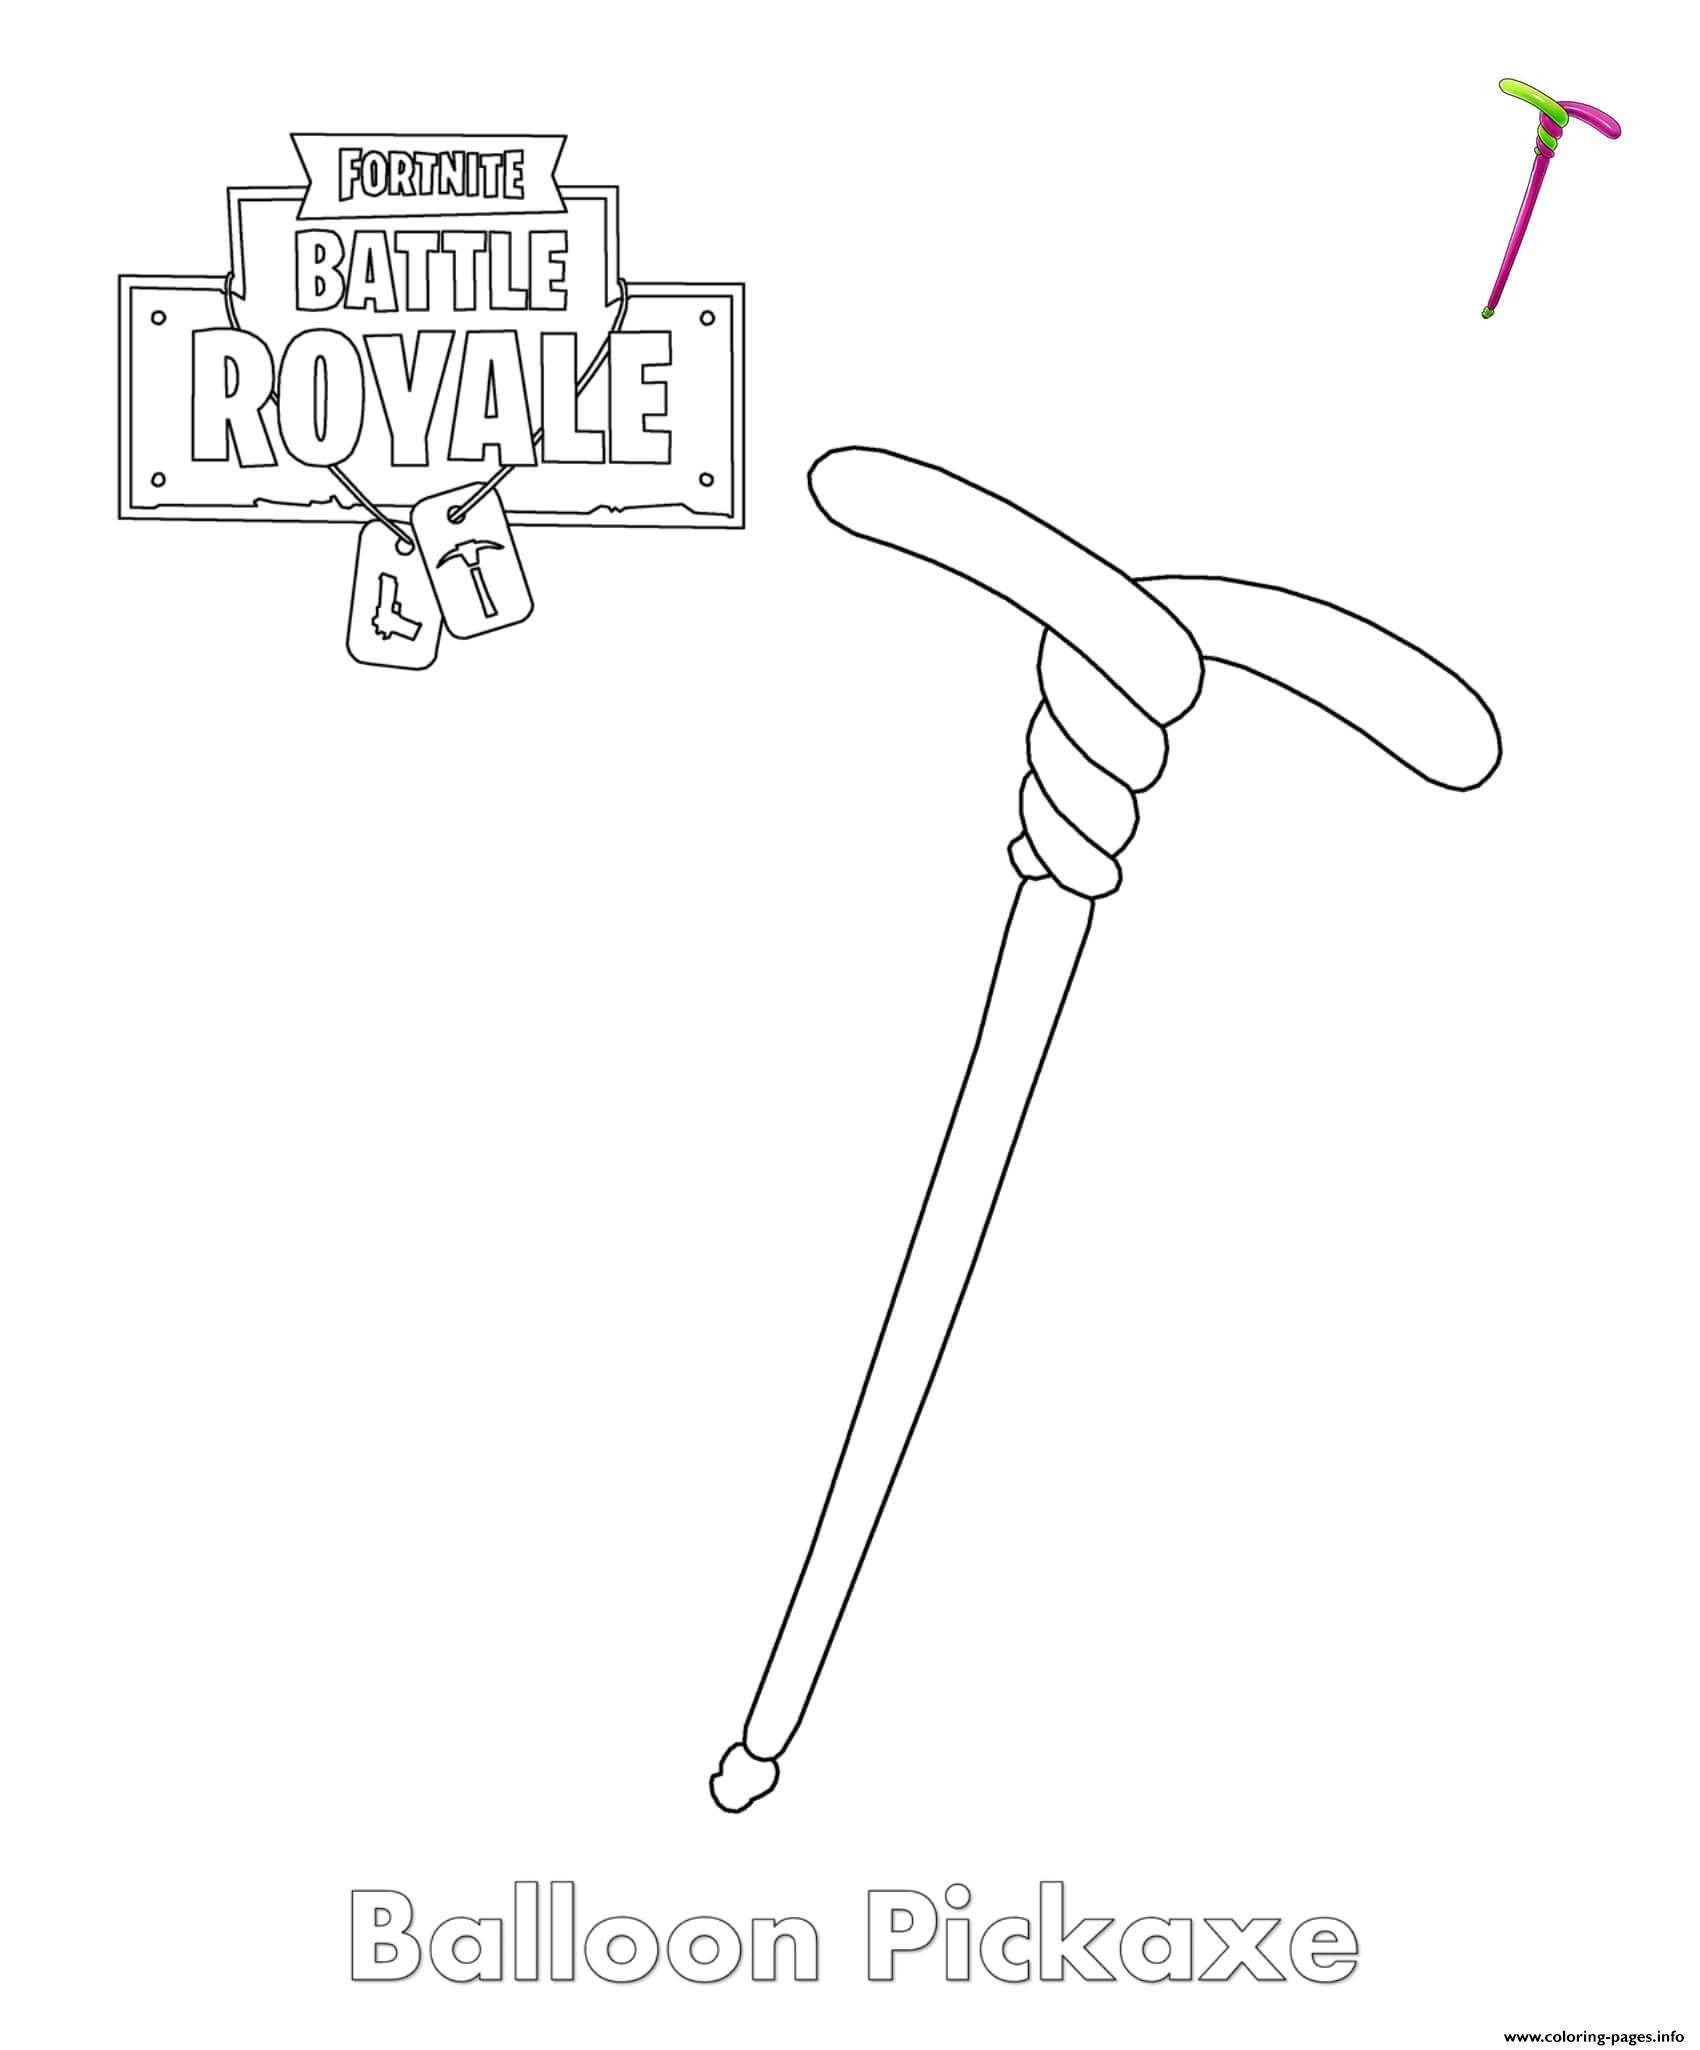 Fortnite Balloon Pickaxe Item Coloring Pages Printable